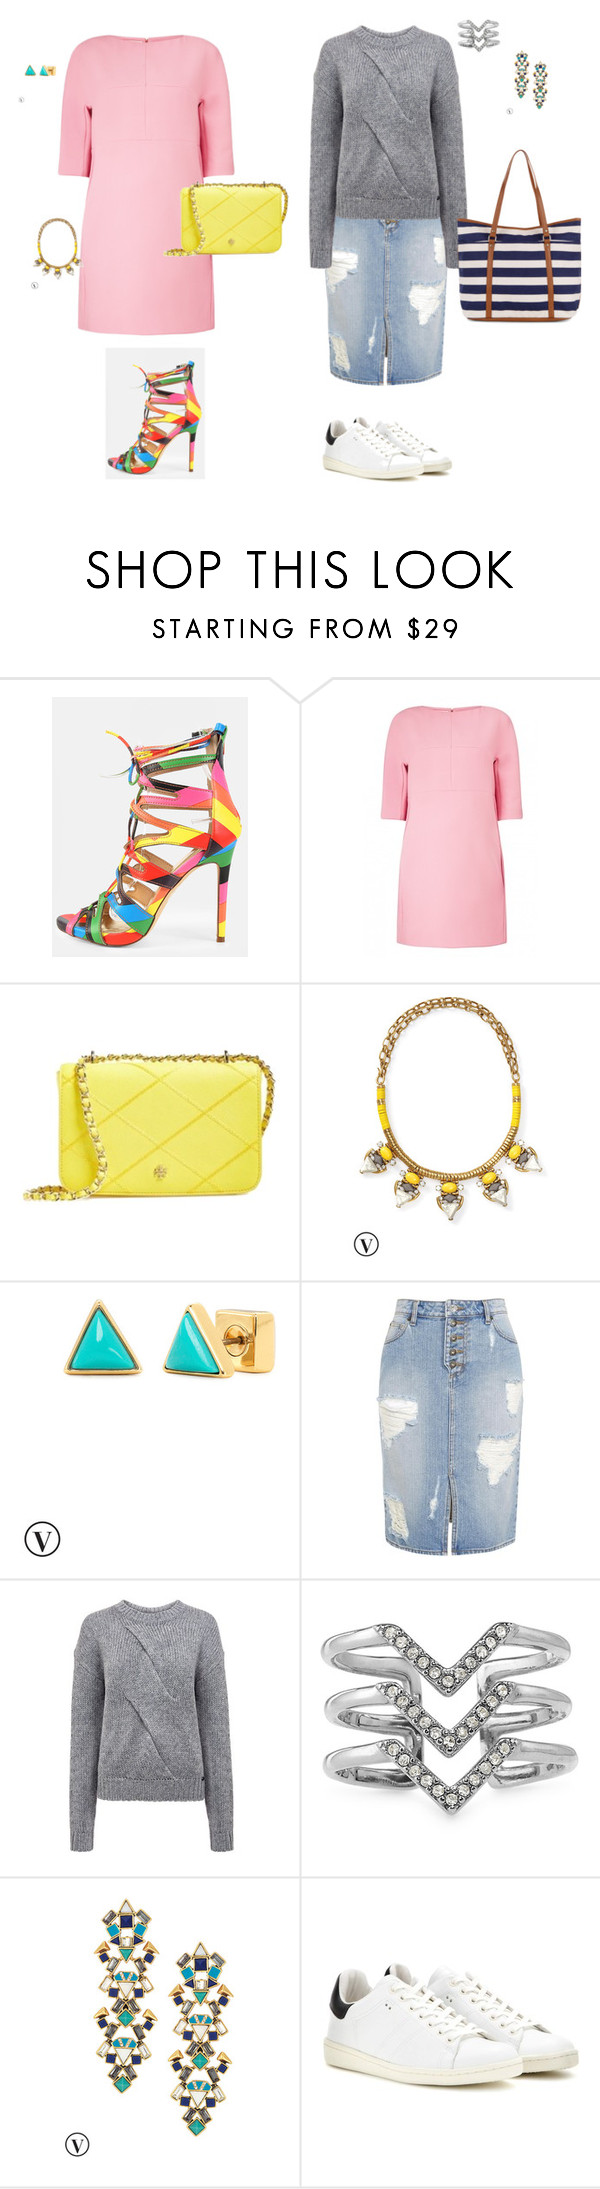 """morpho-style"" by harmonie-conseillere-en-image on Polyvore featuring mode, Marni, Tory Burch, Stella & Dot, Pink Tartan, Isabel Marant, Accessorize, women's clothing, women et female"